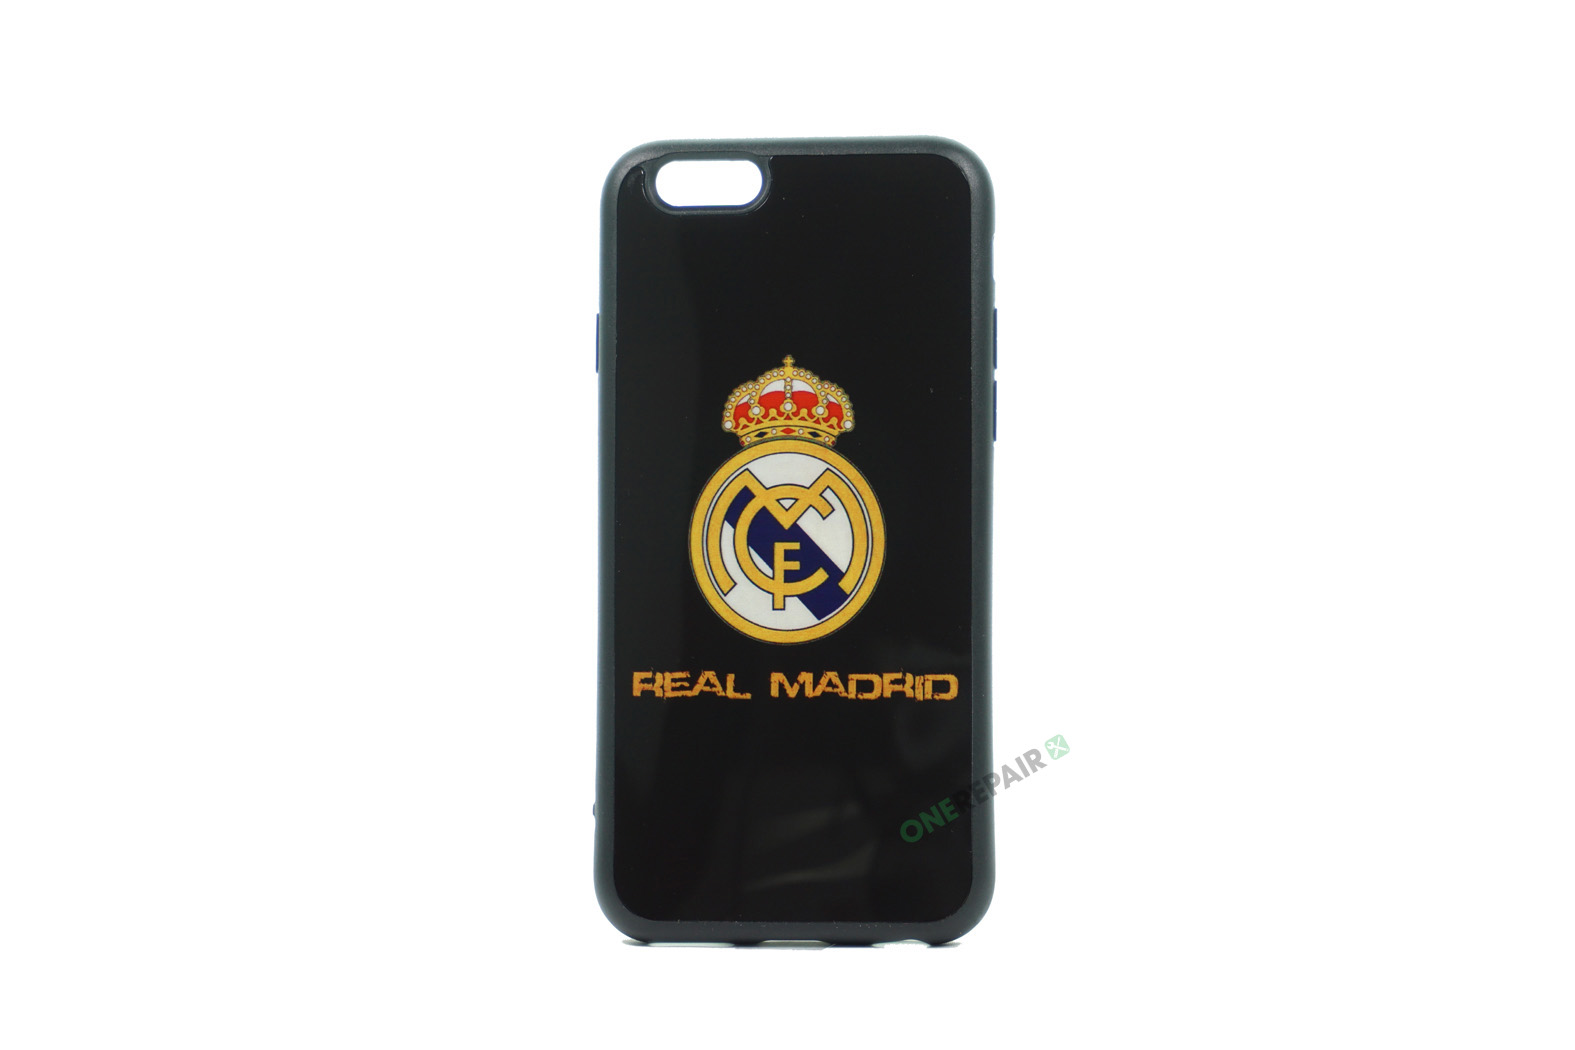 iPhone 6, 6S, A1549, A1586, A1589, A1633, A1688, A1700, A1691, Apple, Bagcover, Cover, Billig, Motiv, Fodbold, Klub, Real Madrid, FC,